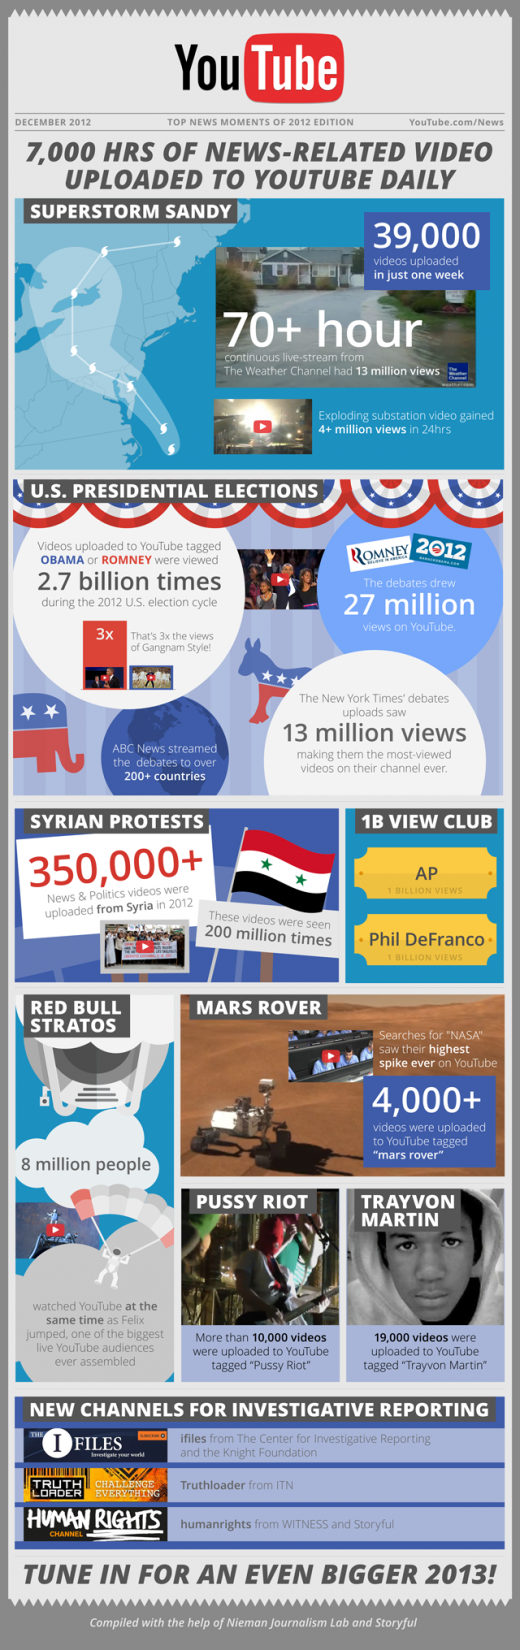 YT News 2012 640px 520x1650 Google recounts how YouTube helped share global news from around the world in 2012